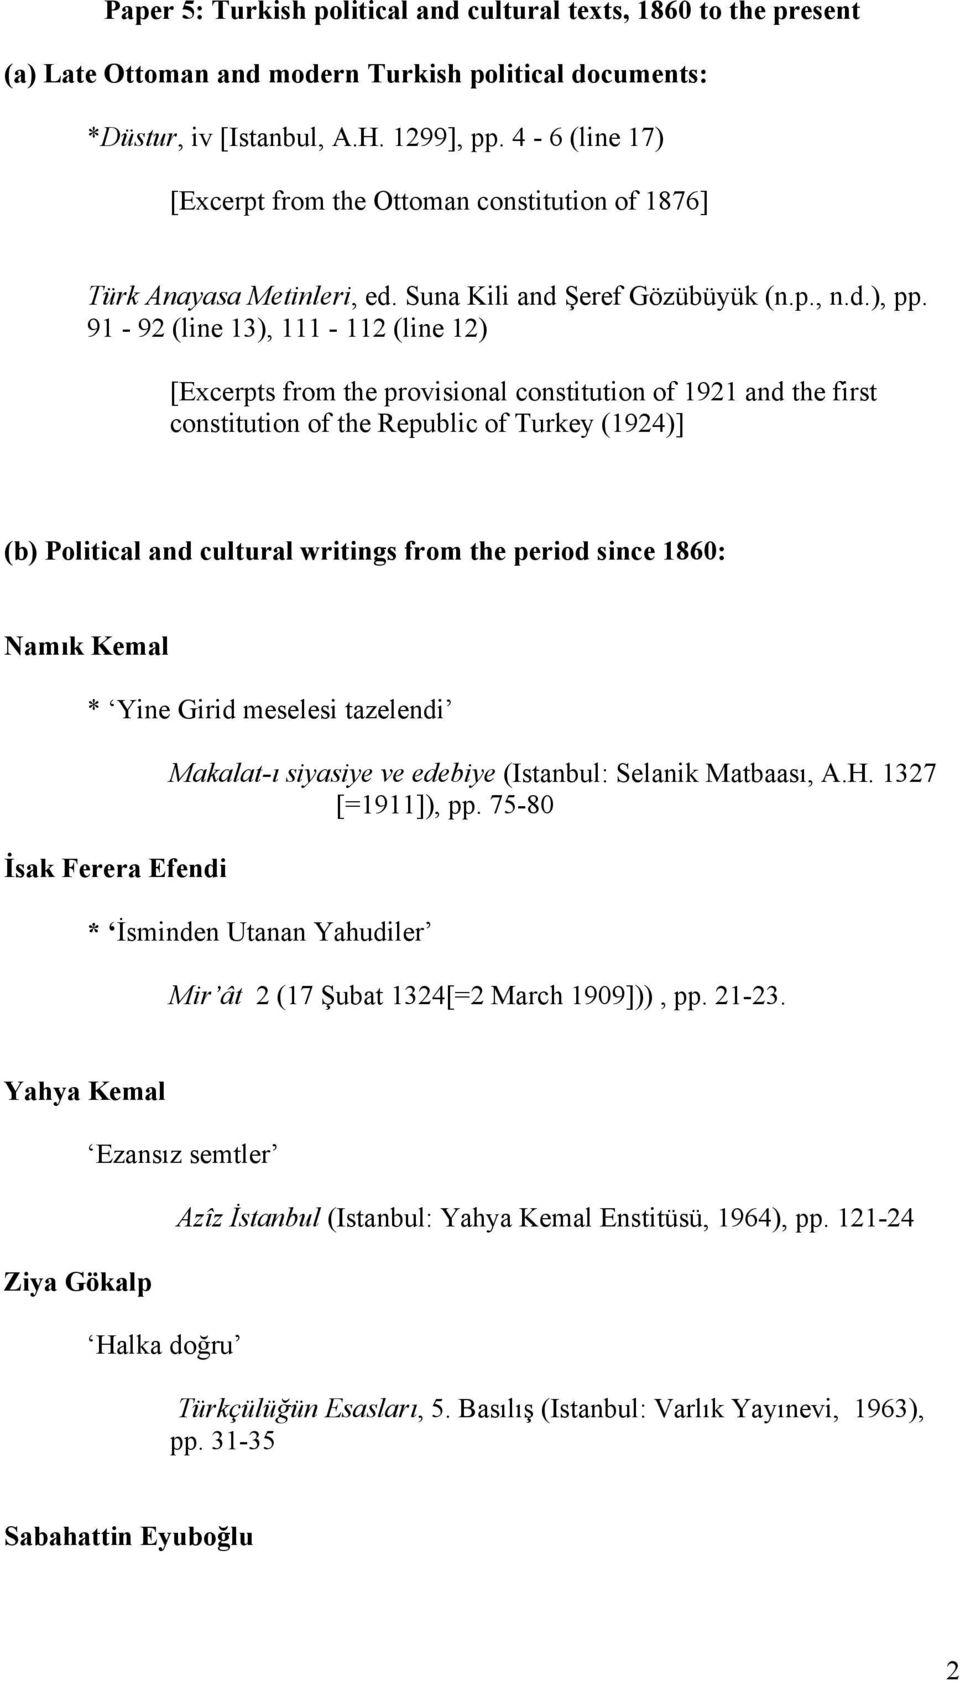 91-92 (line 13), 111-112 (line 12) [Excerpts from the provisional constitution of 1921 and the first constitution of the Republic of Turkey (1924)] (b) Political and cultural writings from the period